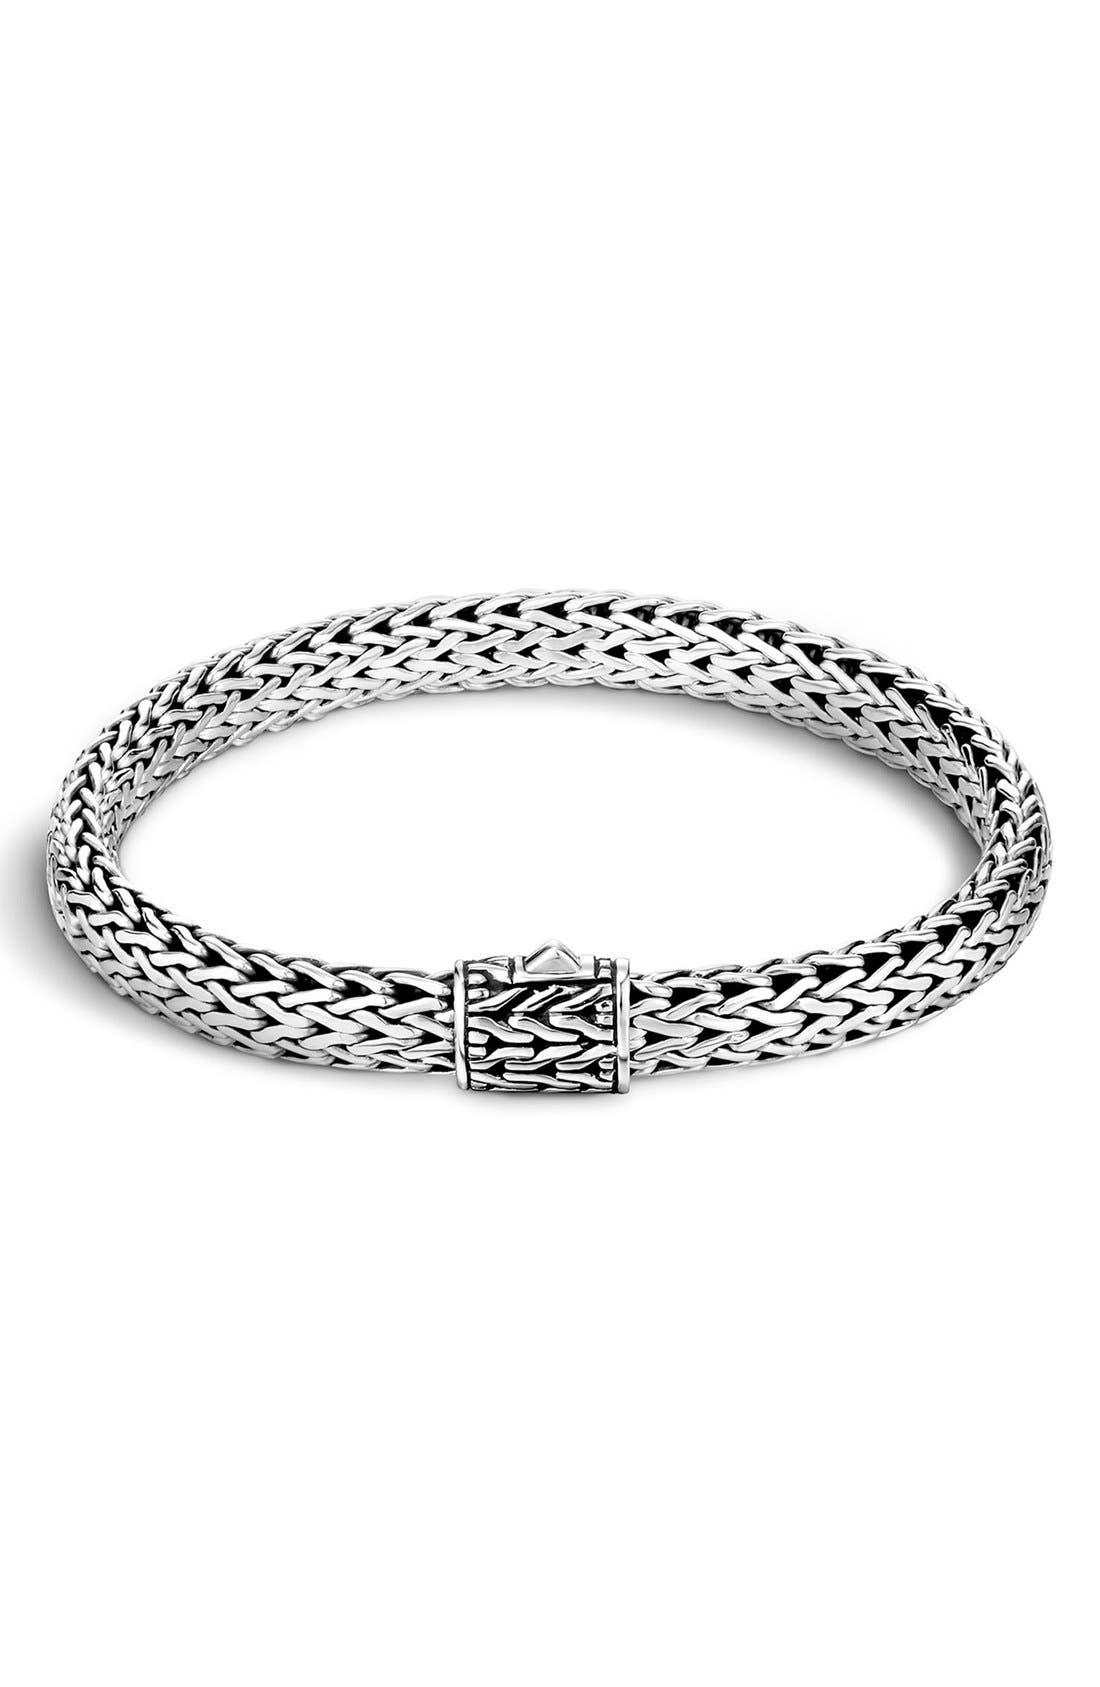 Alternate Image 1 Selected - John Hardy Classic Chain 6.5mm Bracelet